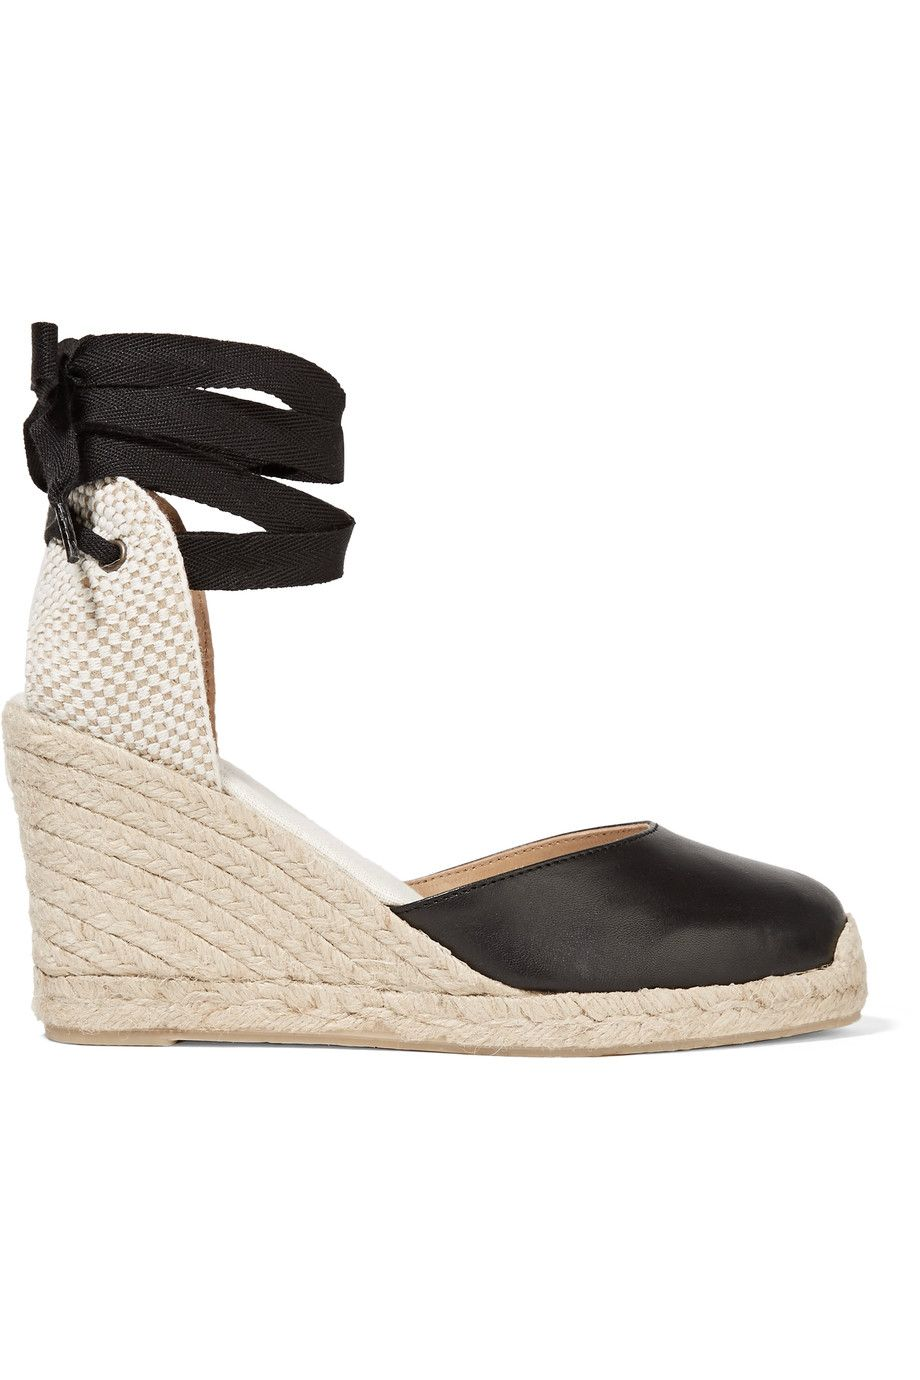 SOLUDOS Woven Raffia And Leather Wedge Espadrilles. #soludos #shoes #flats